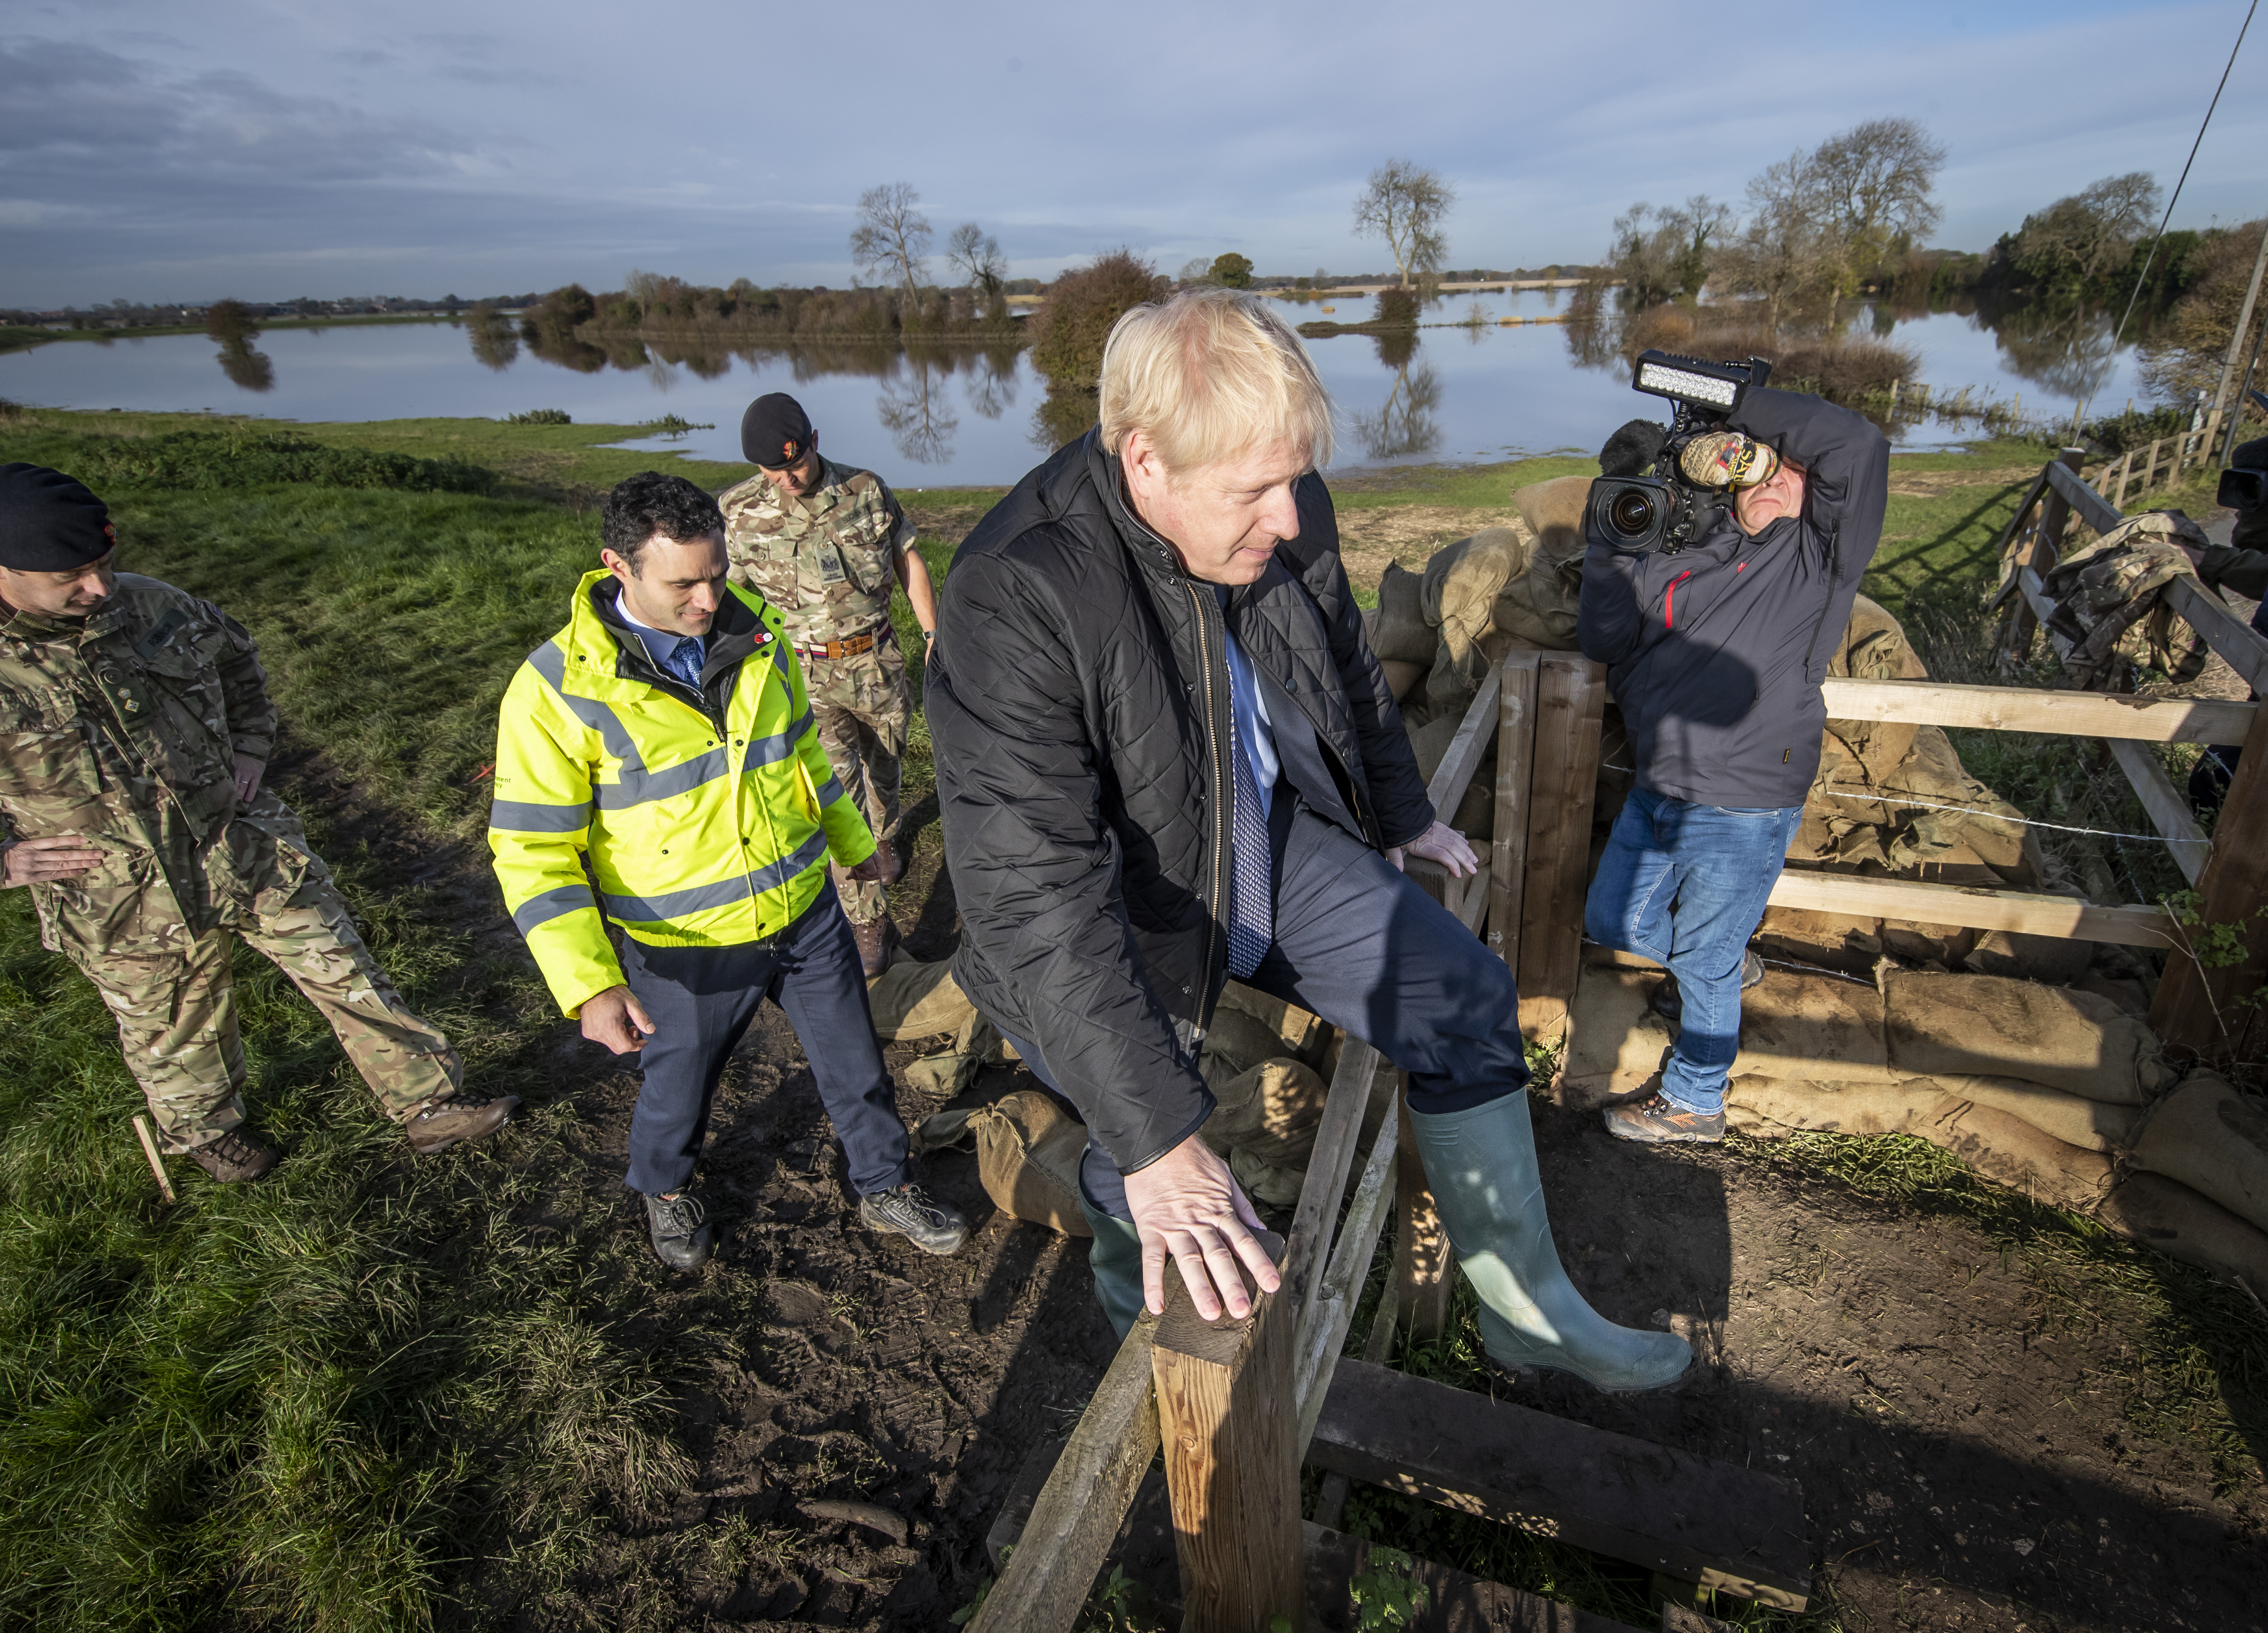 Boris Johnson, clambers over a fence, during a visit to see the effects of recent flooding, in Stainforth, England, Wednesday, November 13, 2019